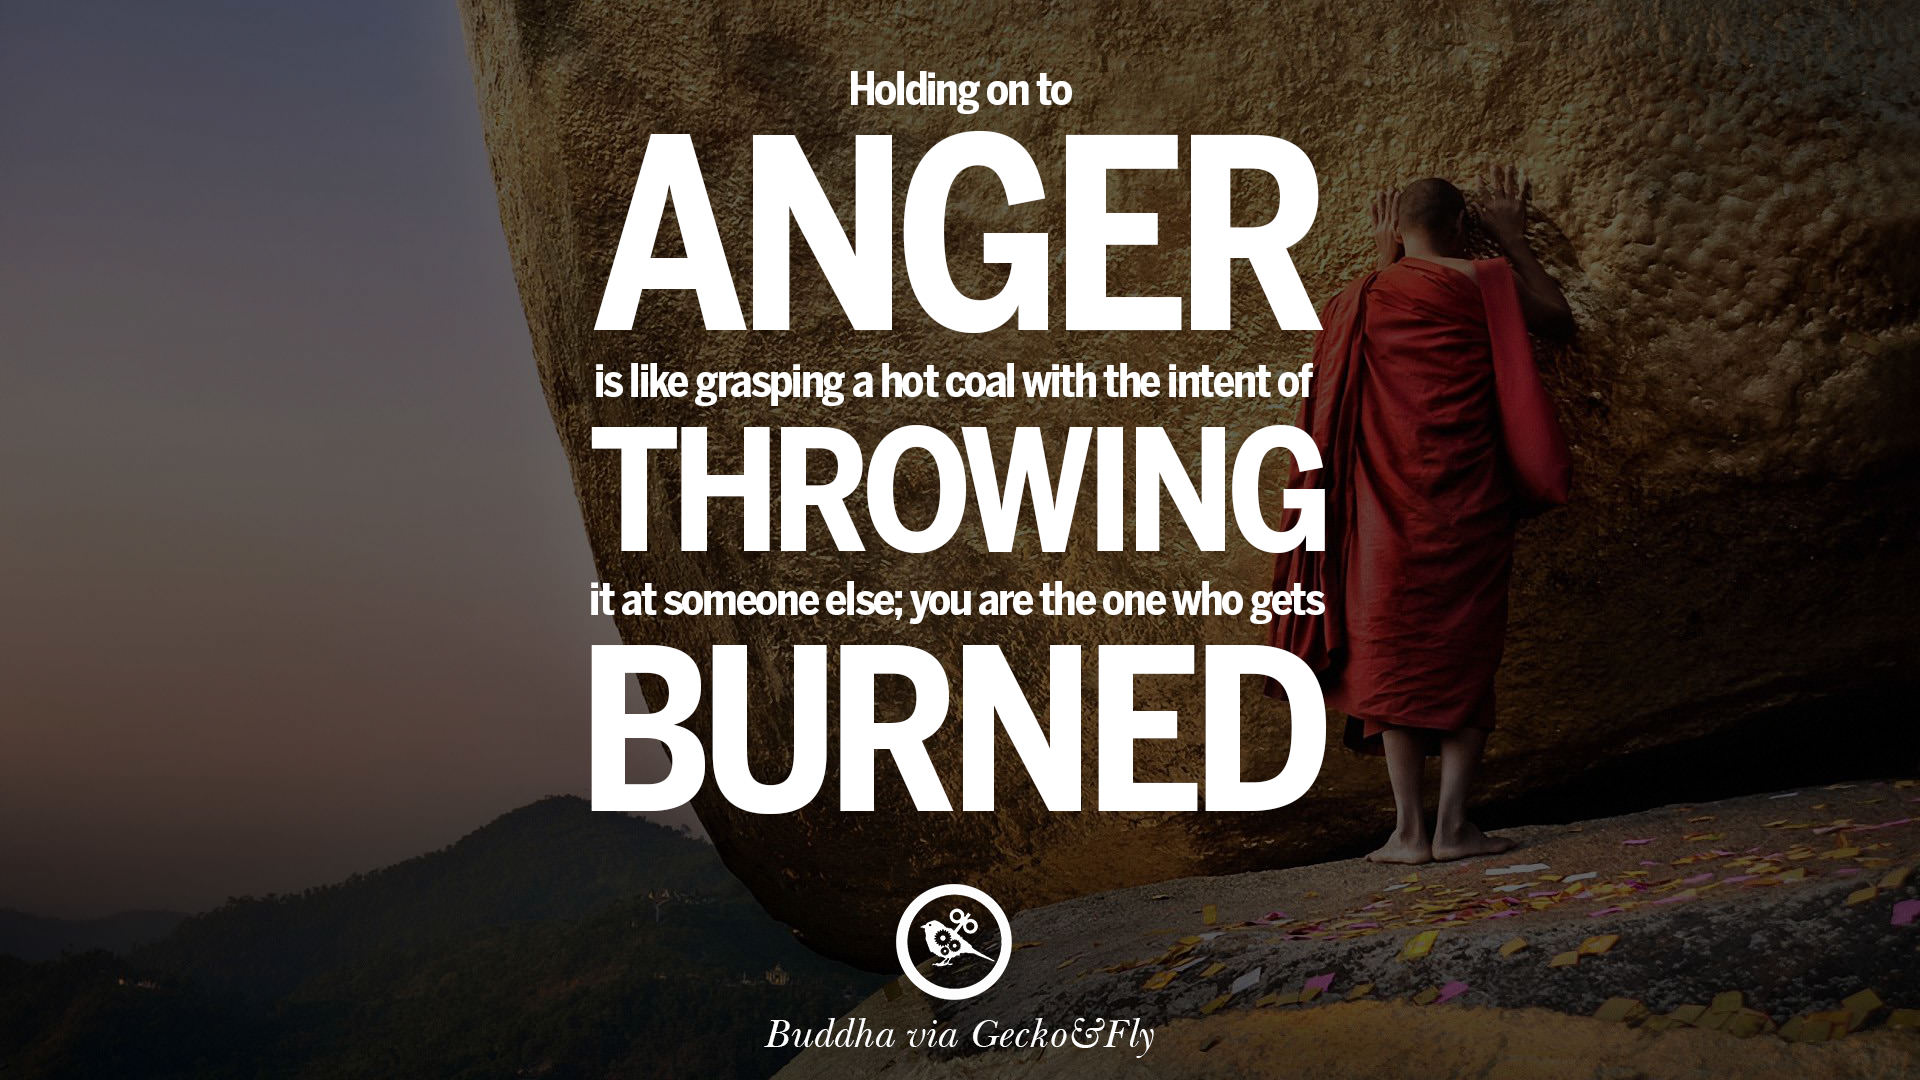 Holding on to anger is like grasping a hot coal with the intent of ...